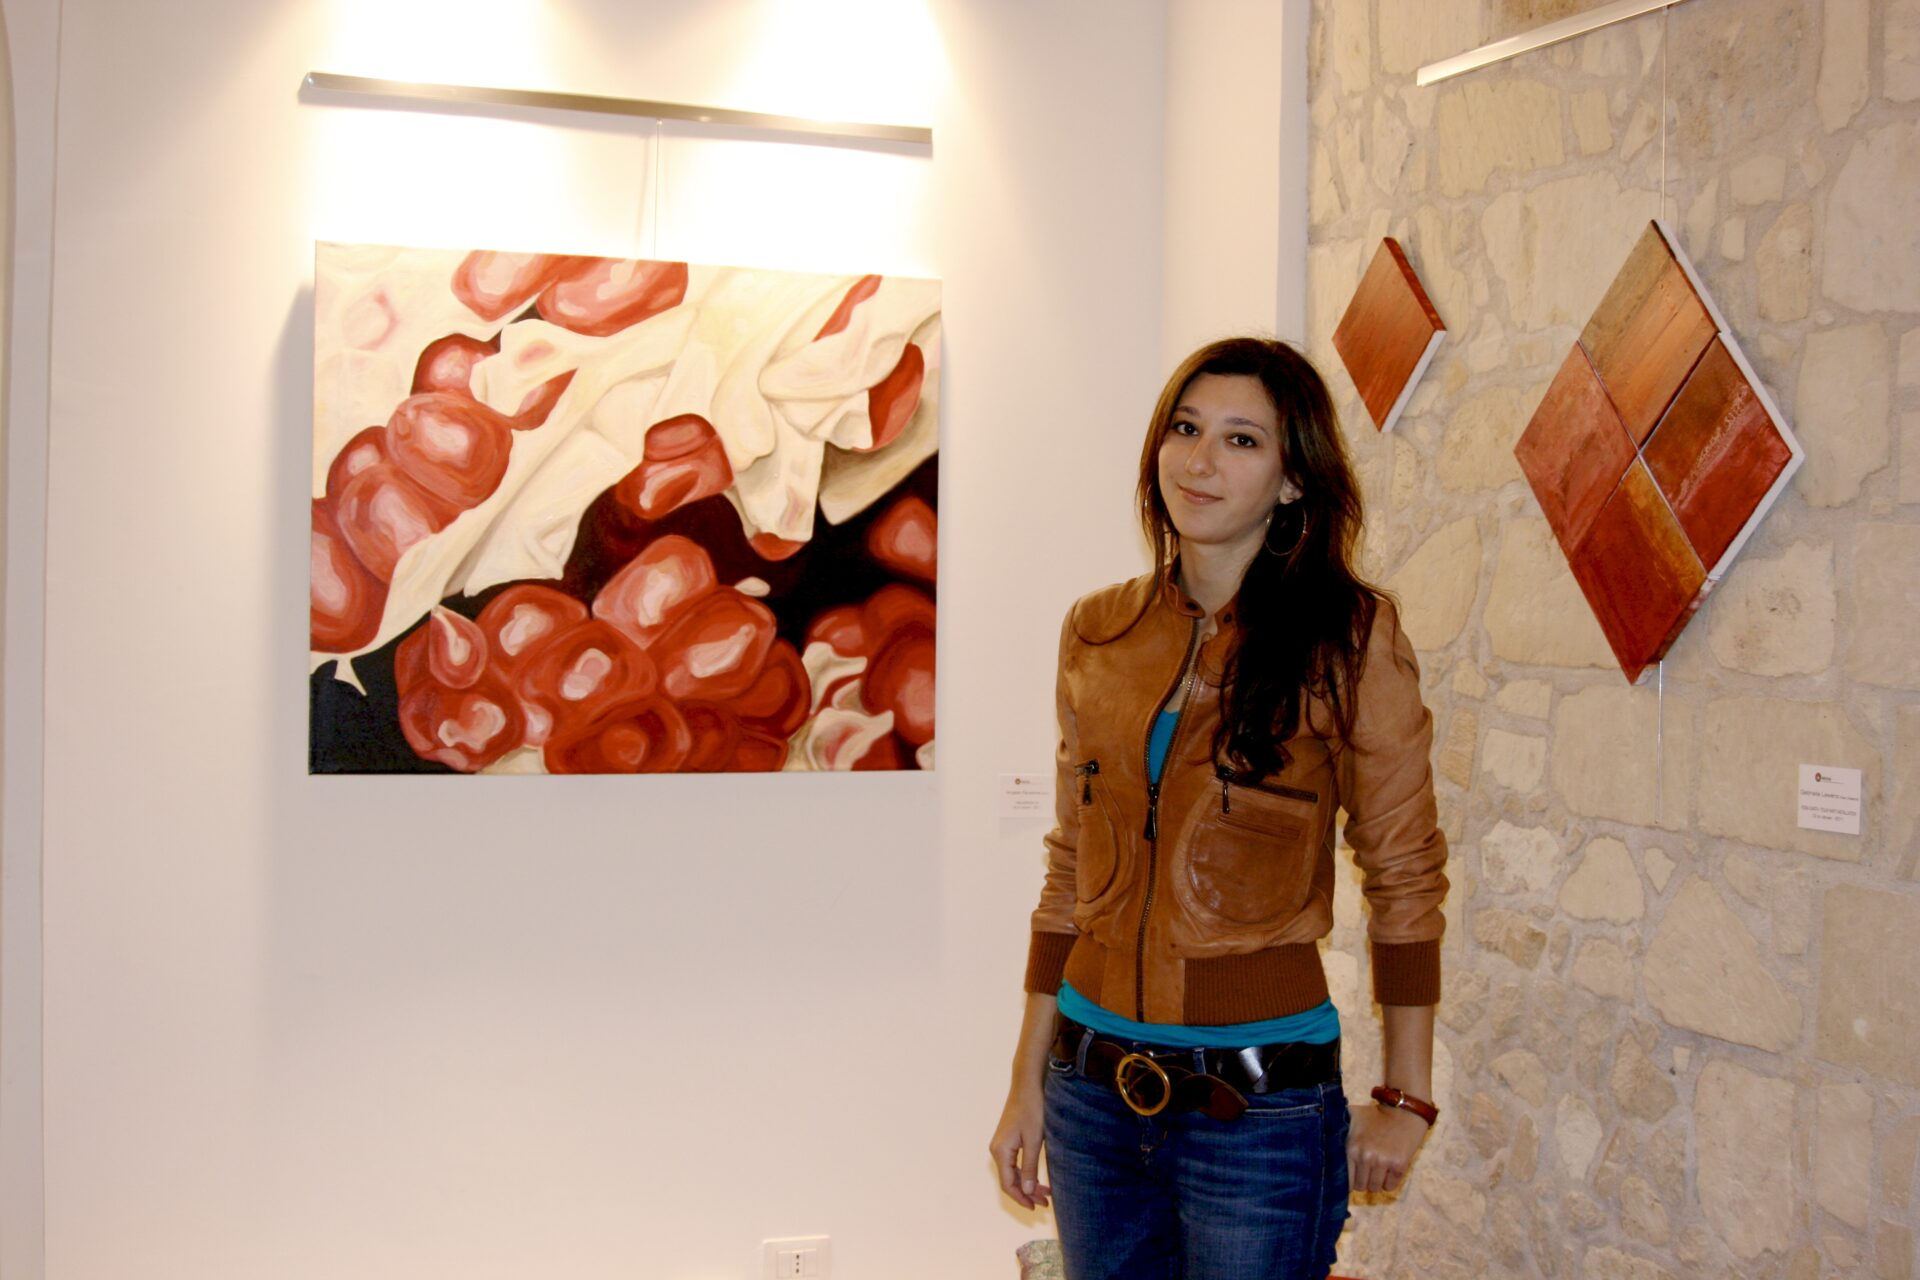 Angela Faustina with her oil painting Melagrana VIII during an art exhibition in Italy